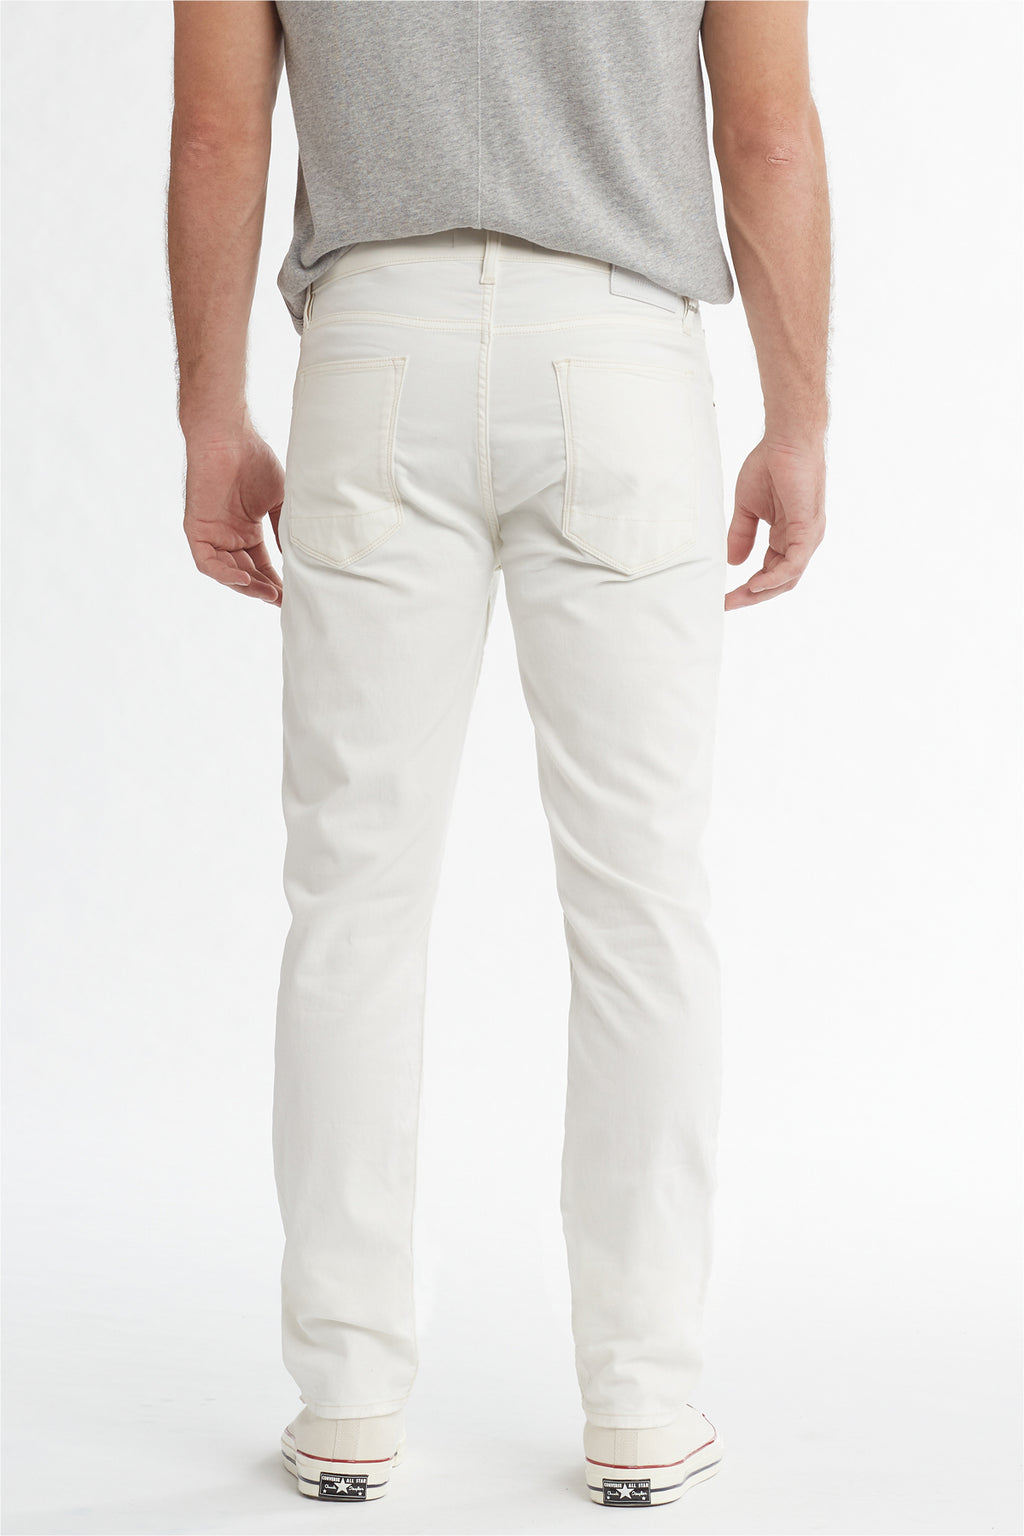 BLAKE SLIM STRAIGHT TWILL JEAN - DIRTY WHITE - Image 4